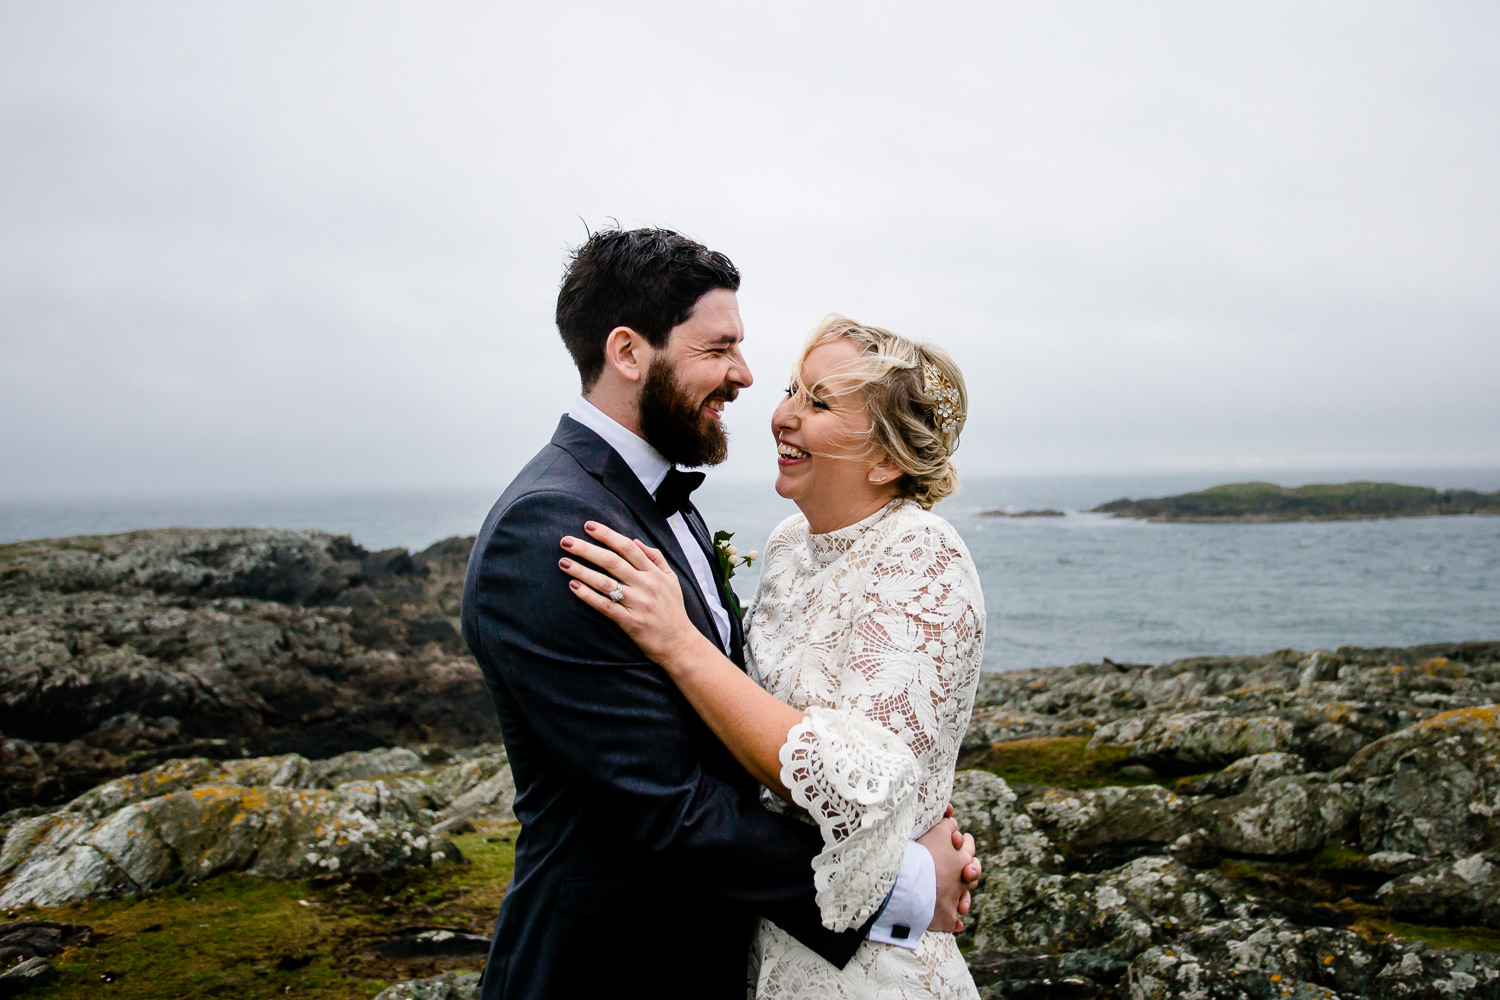 Wales Wedding Photographer, a bride and groom on the cliffs of the headland in Anglesey.